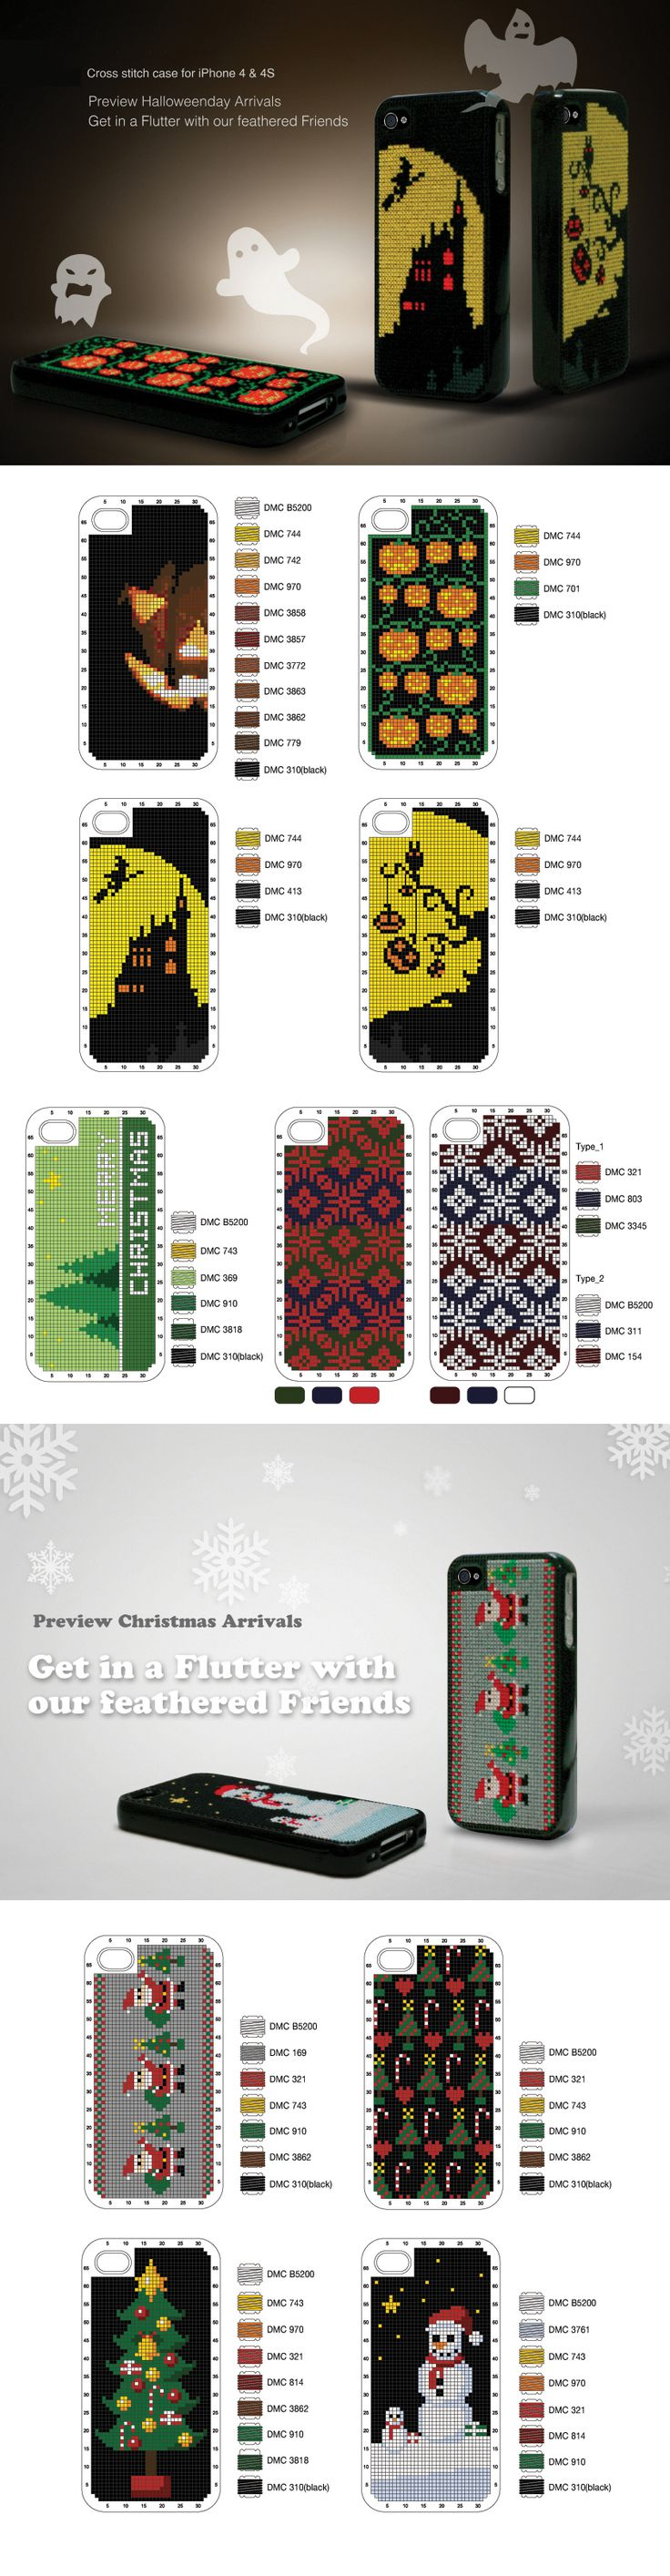 This is awesome - cross stitch iPhone cases. I'm in love